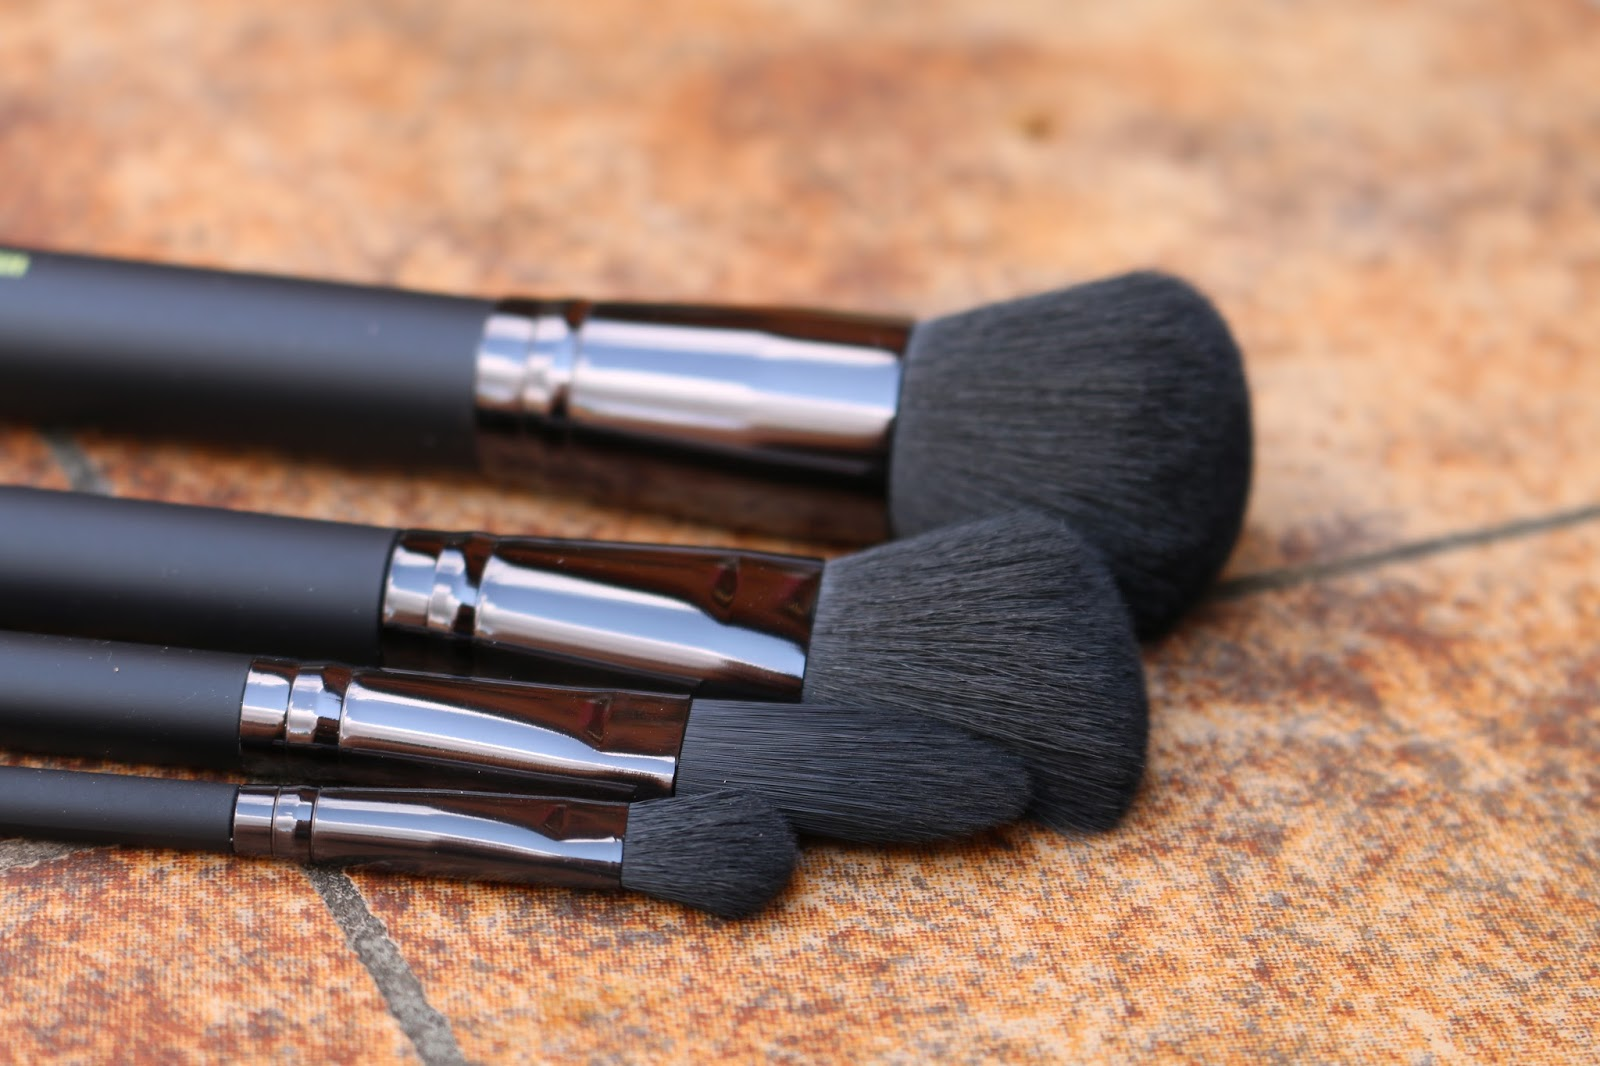 Lab2 brushes